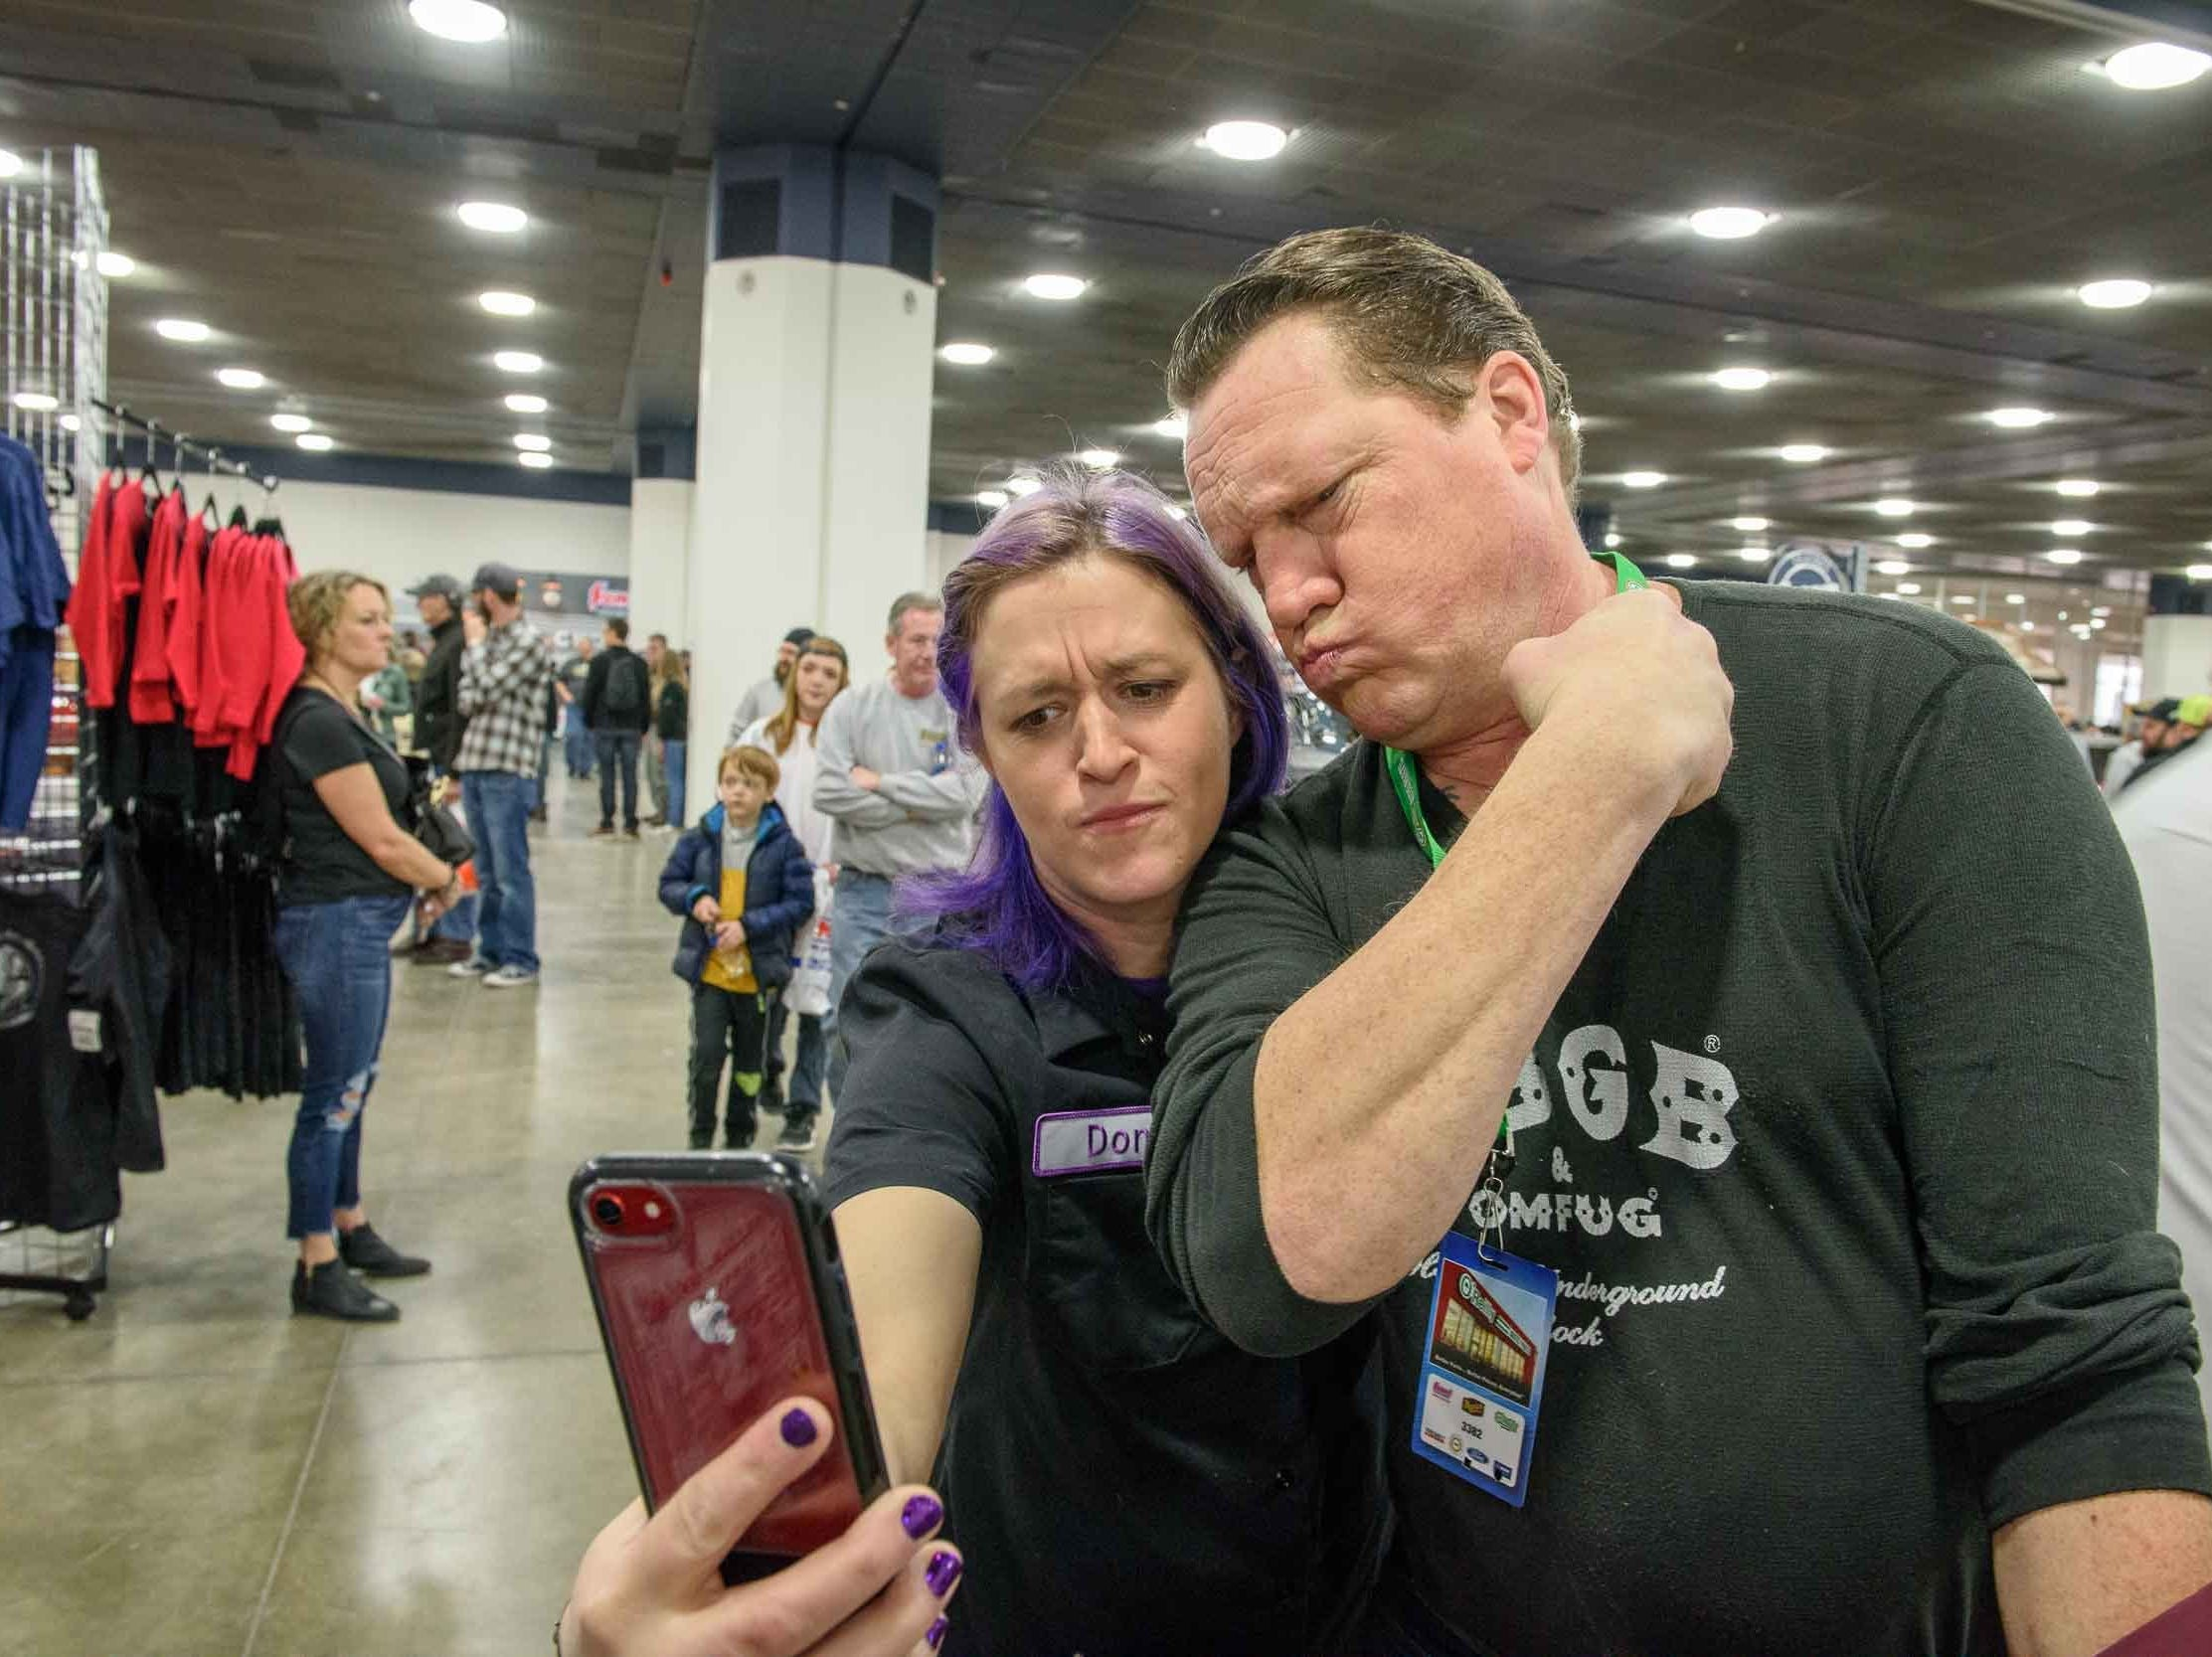 The Detroit Autorama also known as America's Greatest Hot Rod Show returned to Cobo Center, Saturday, March 2, 2019. The showcase of custom cars and hot rods were displayed on two floors.